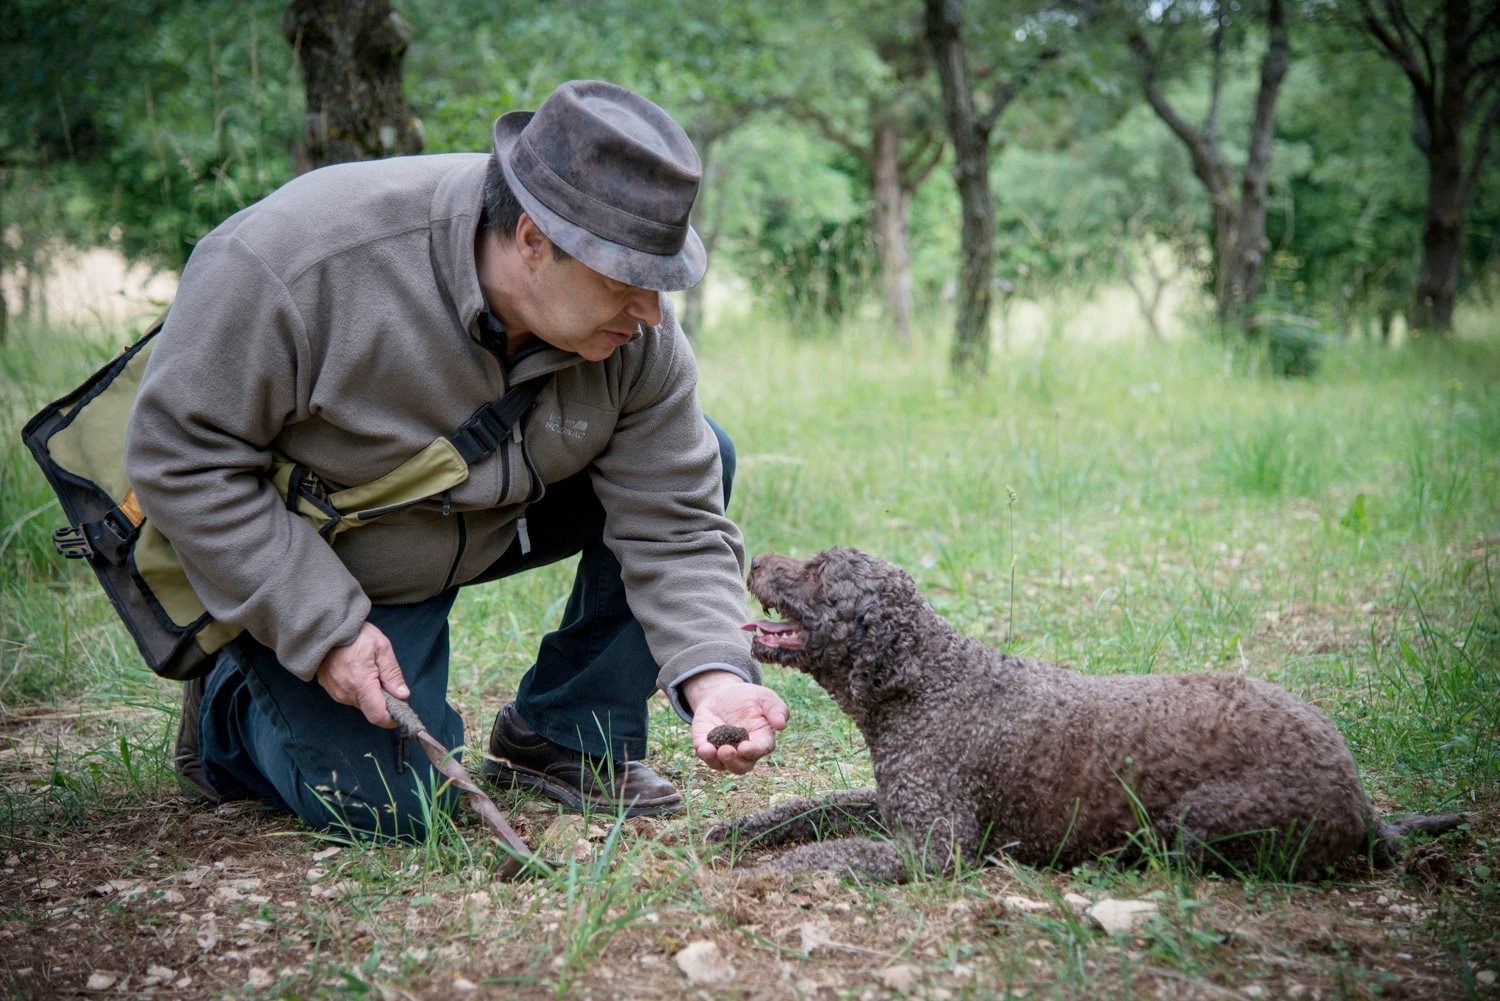 Wine and truffle tour, truffle hunter training his dog